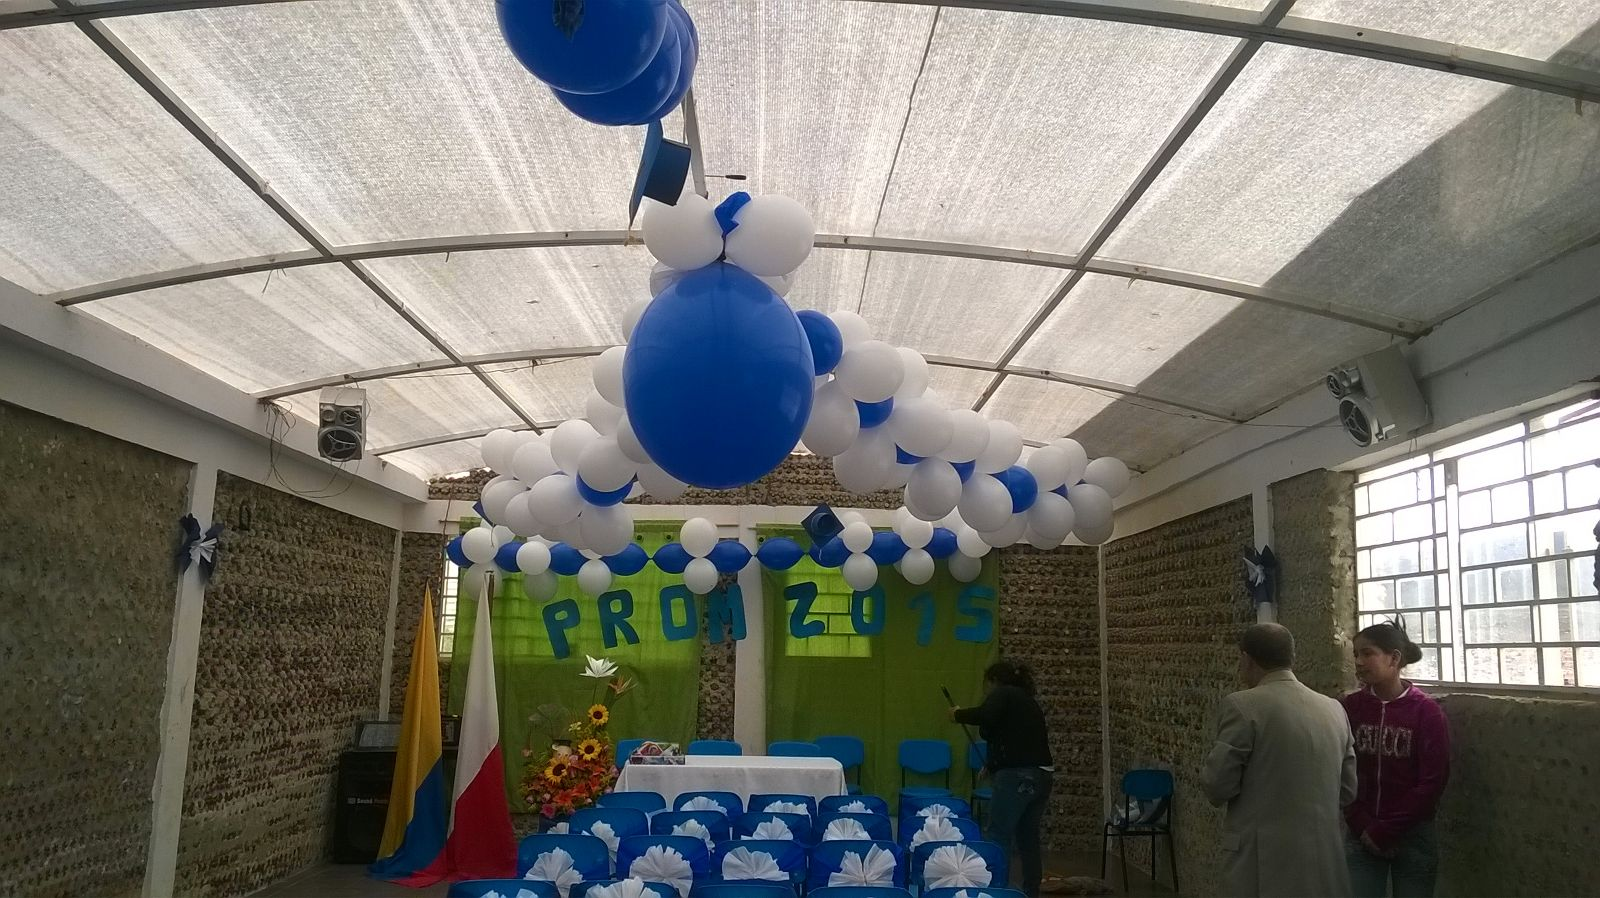 The center was nicely decorated by the students and school staff themselves